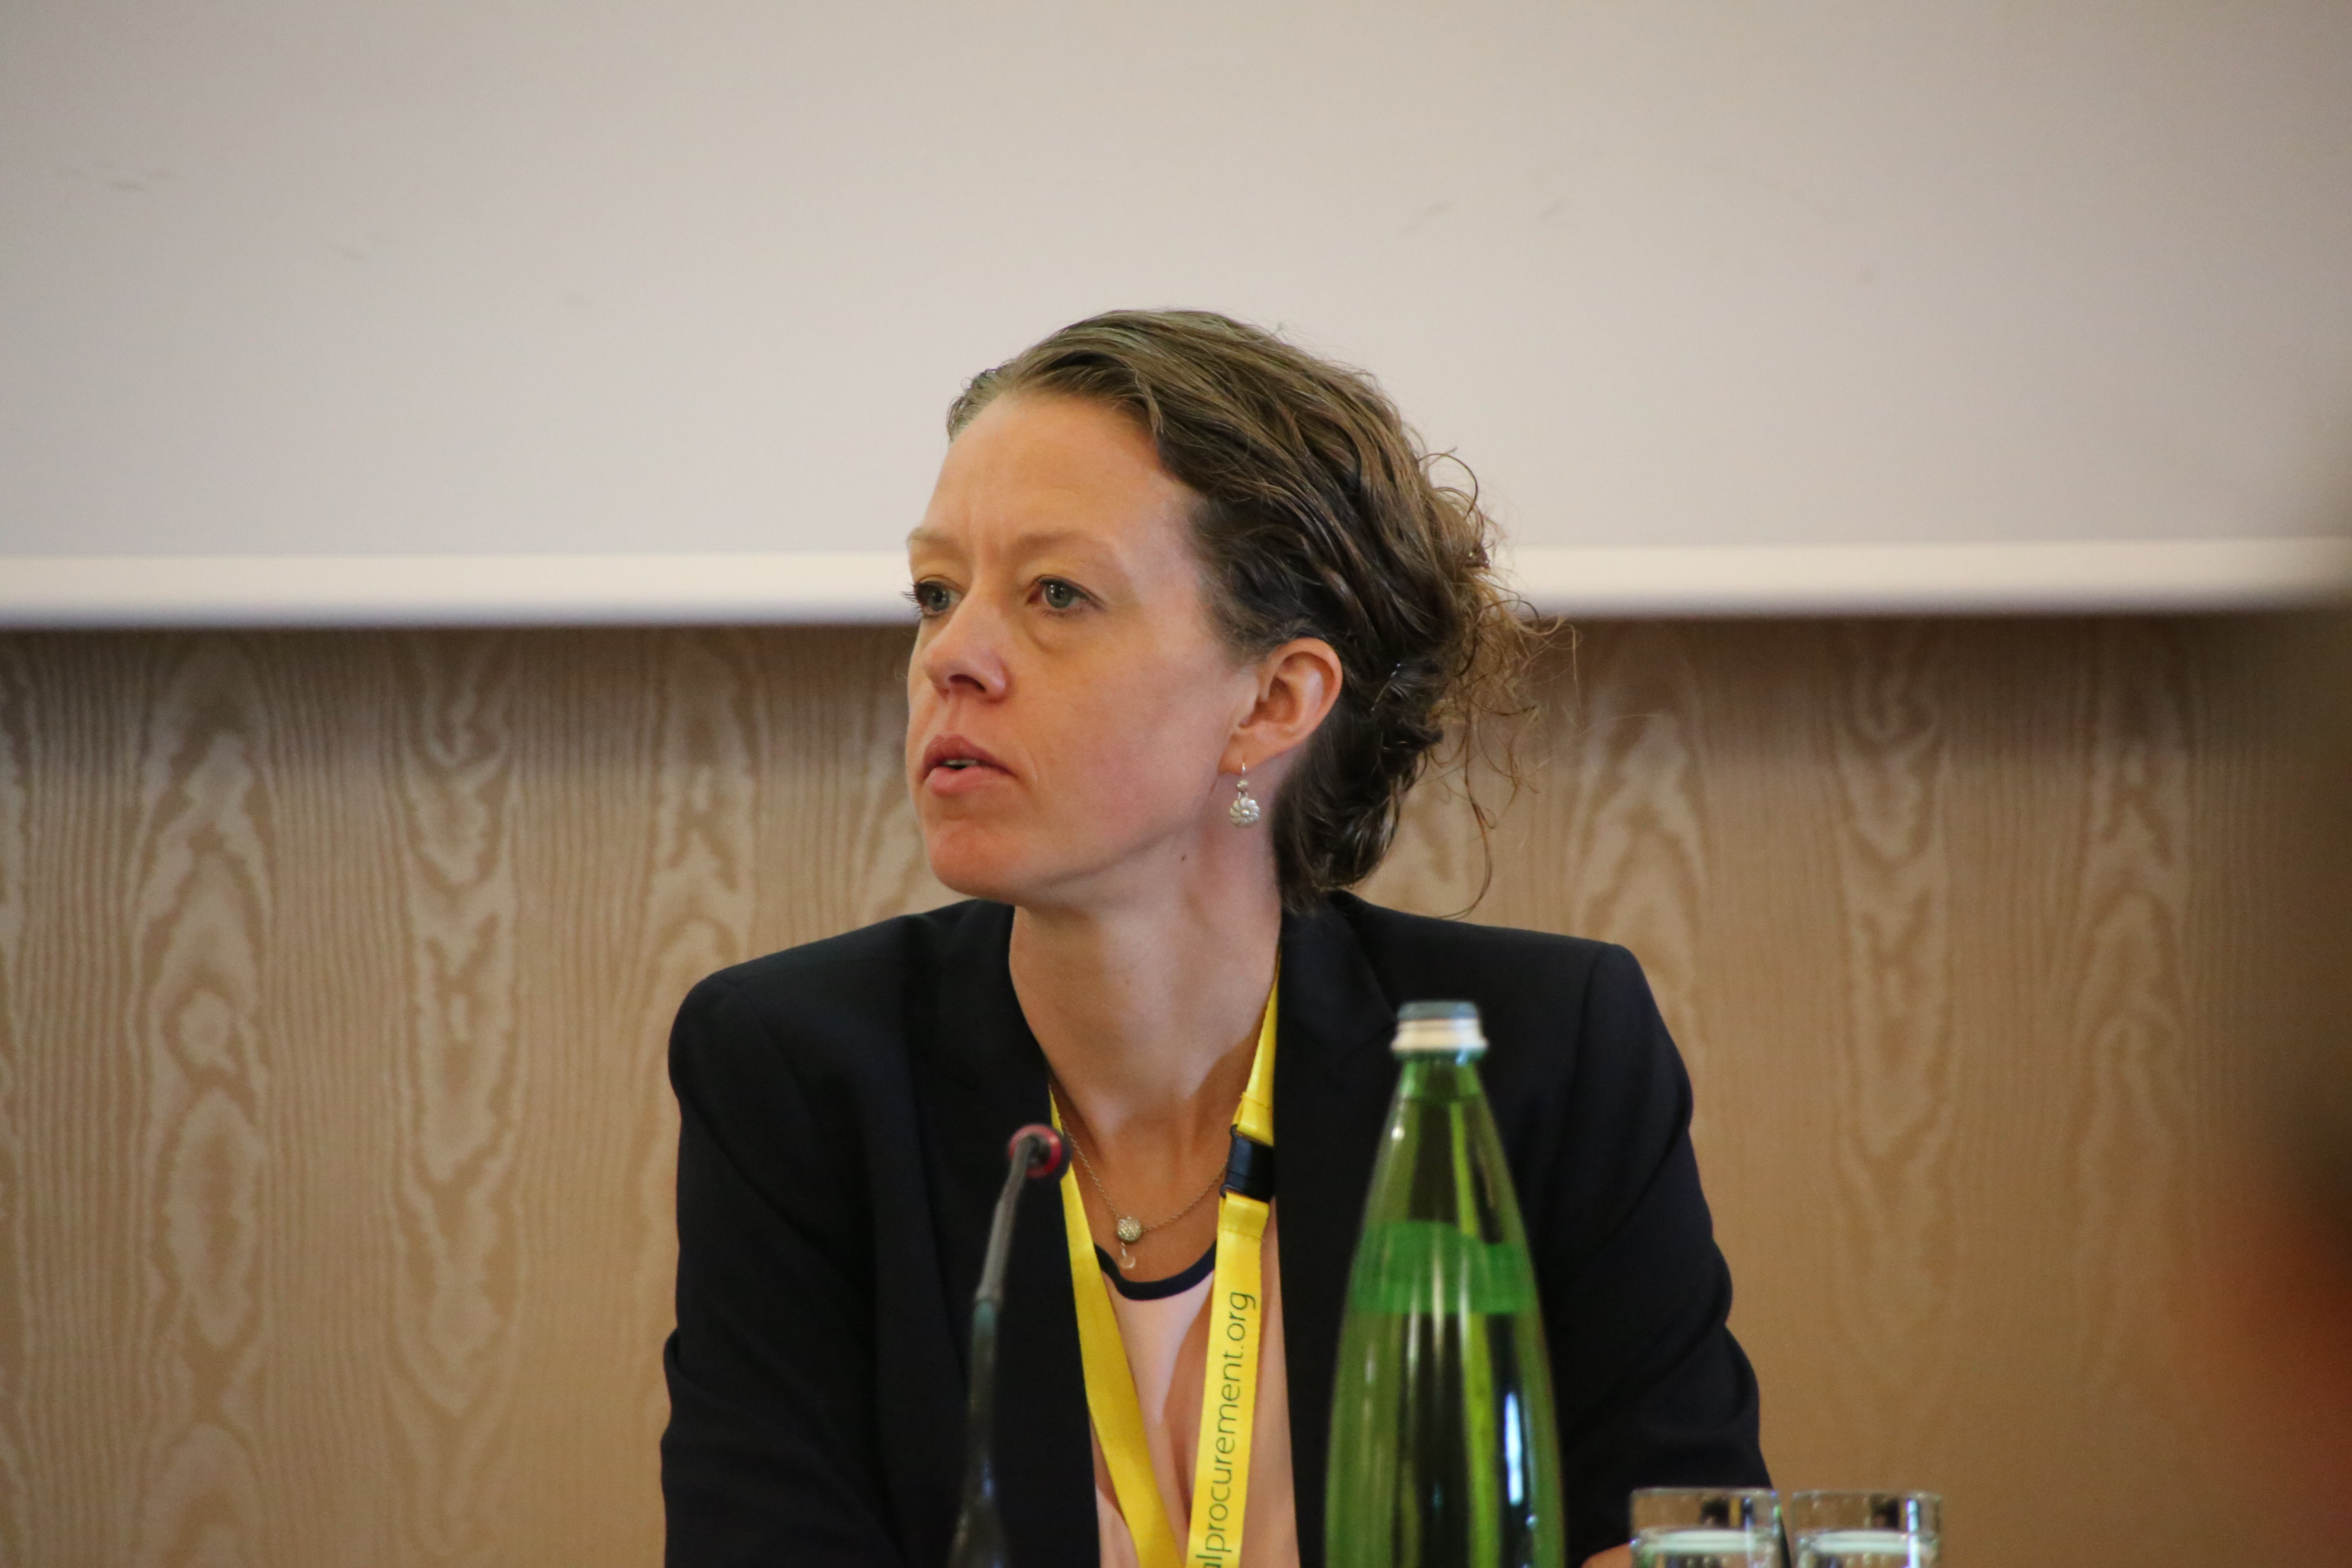 Grith Skovgaard Olykke at the 2016 Global Procurement Conference in Rome.